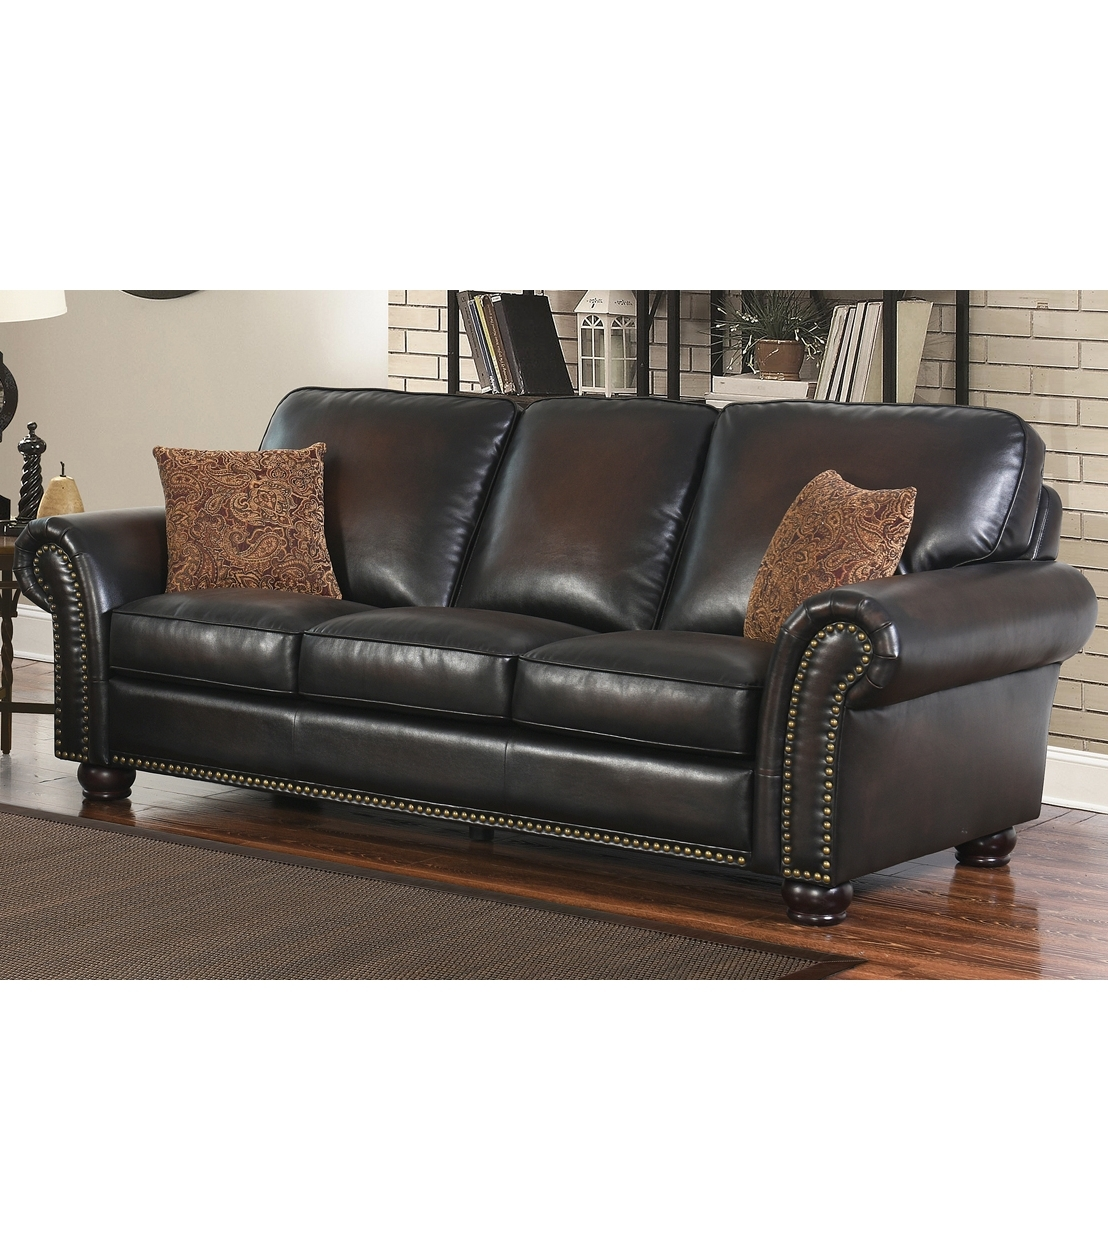 Sofas : Braxton Hand Rubbed Leather Sofa Regarding Widely Used Braxton Sofas (View 10 of 15)